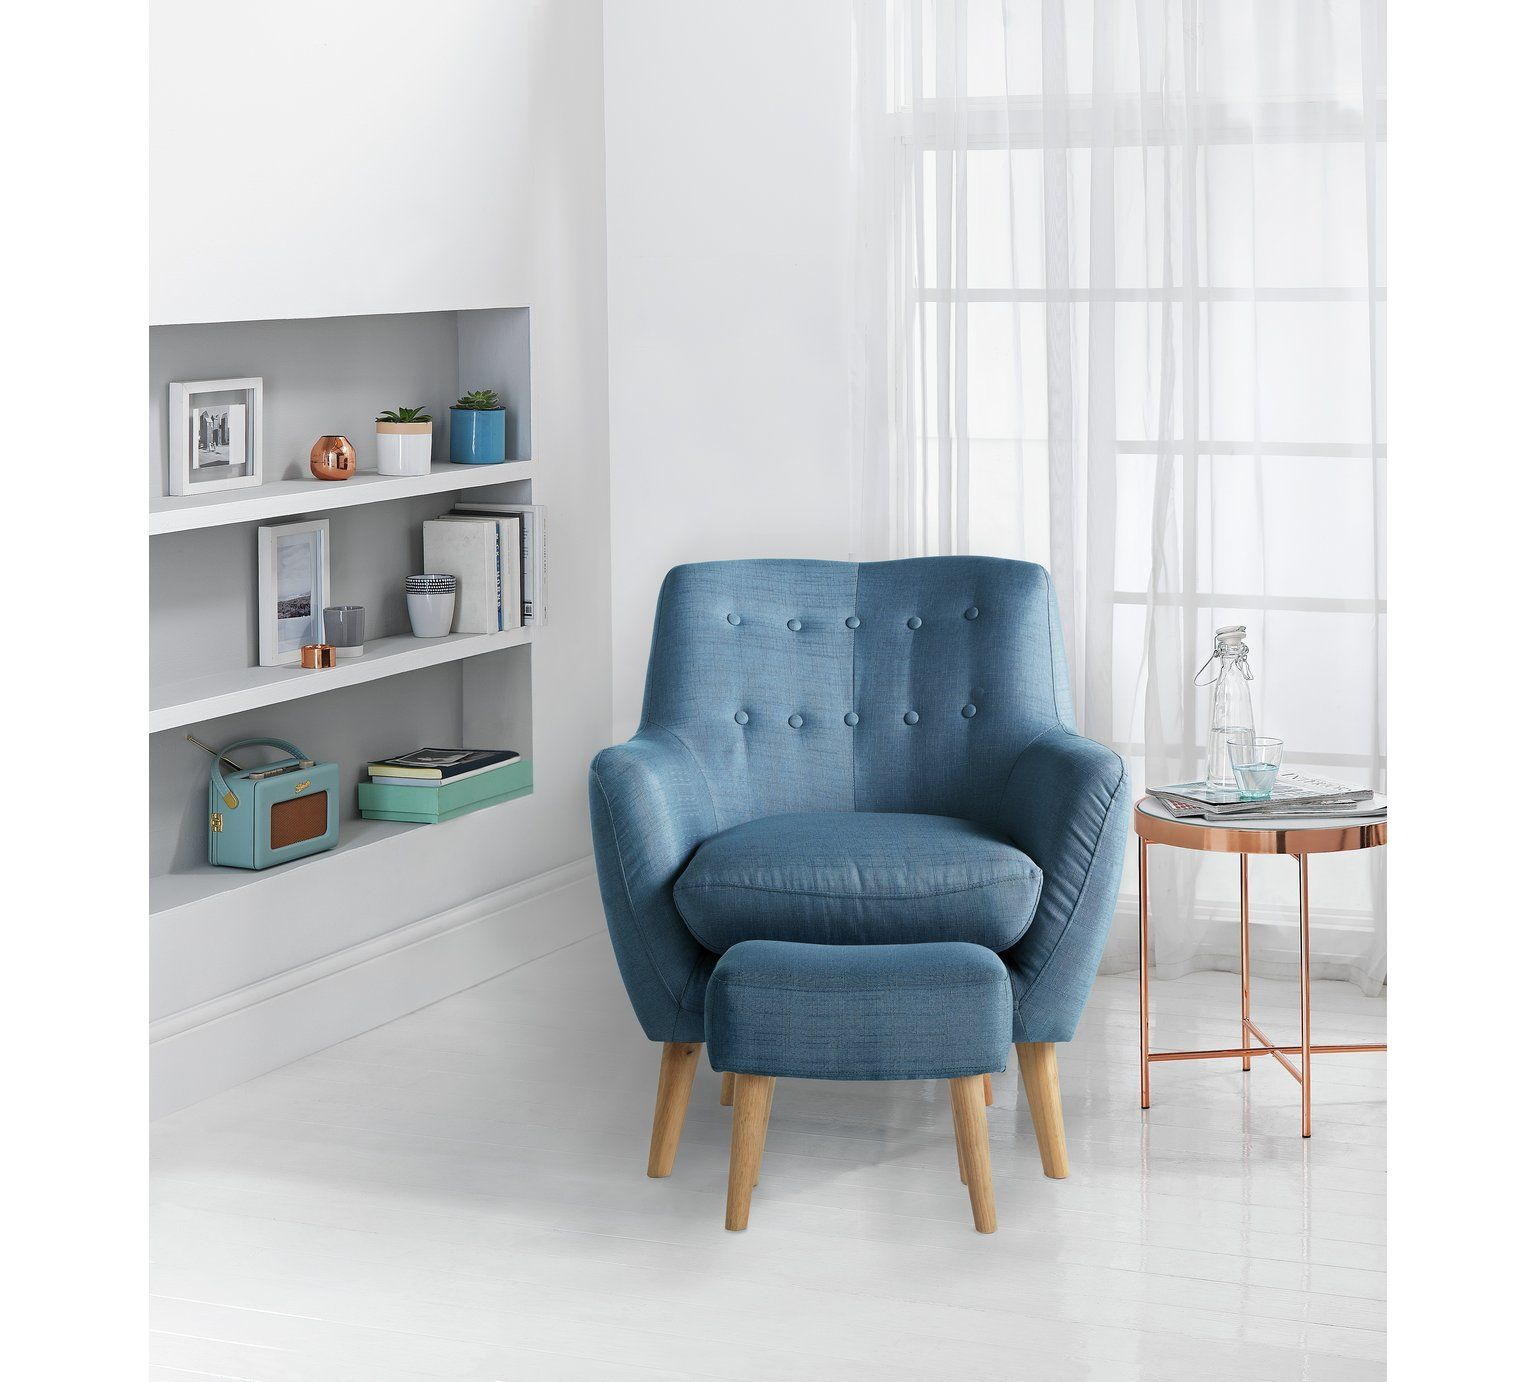 Buy Hygena Otis Fabric Chair and Footstool - Blue at Argos.co.uk